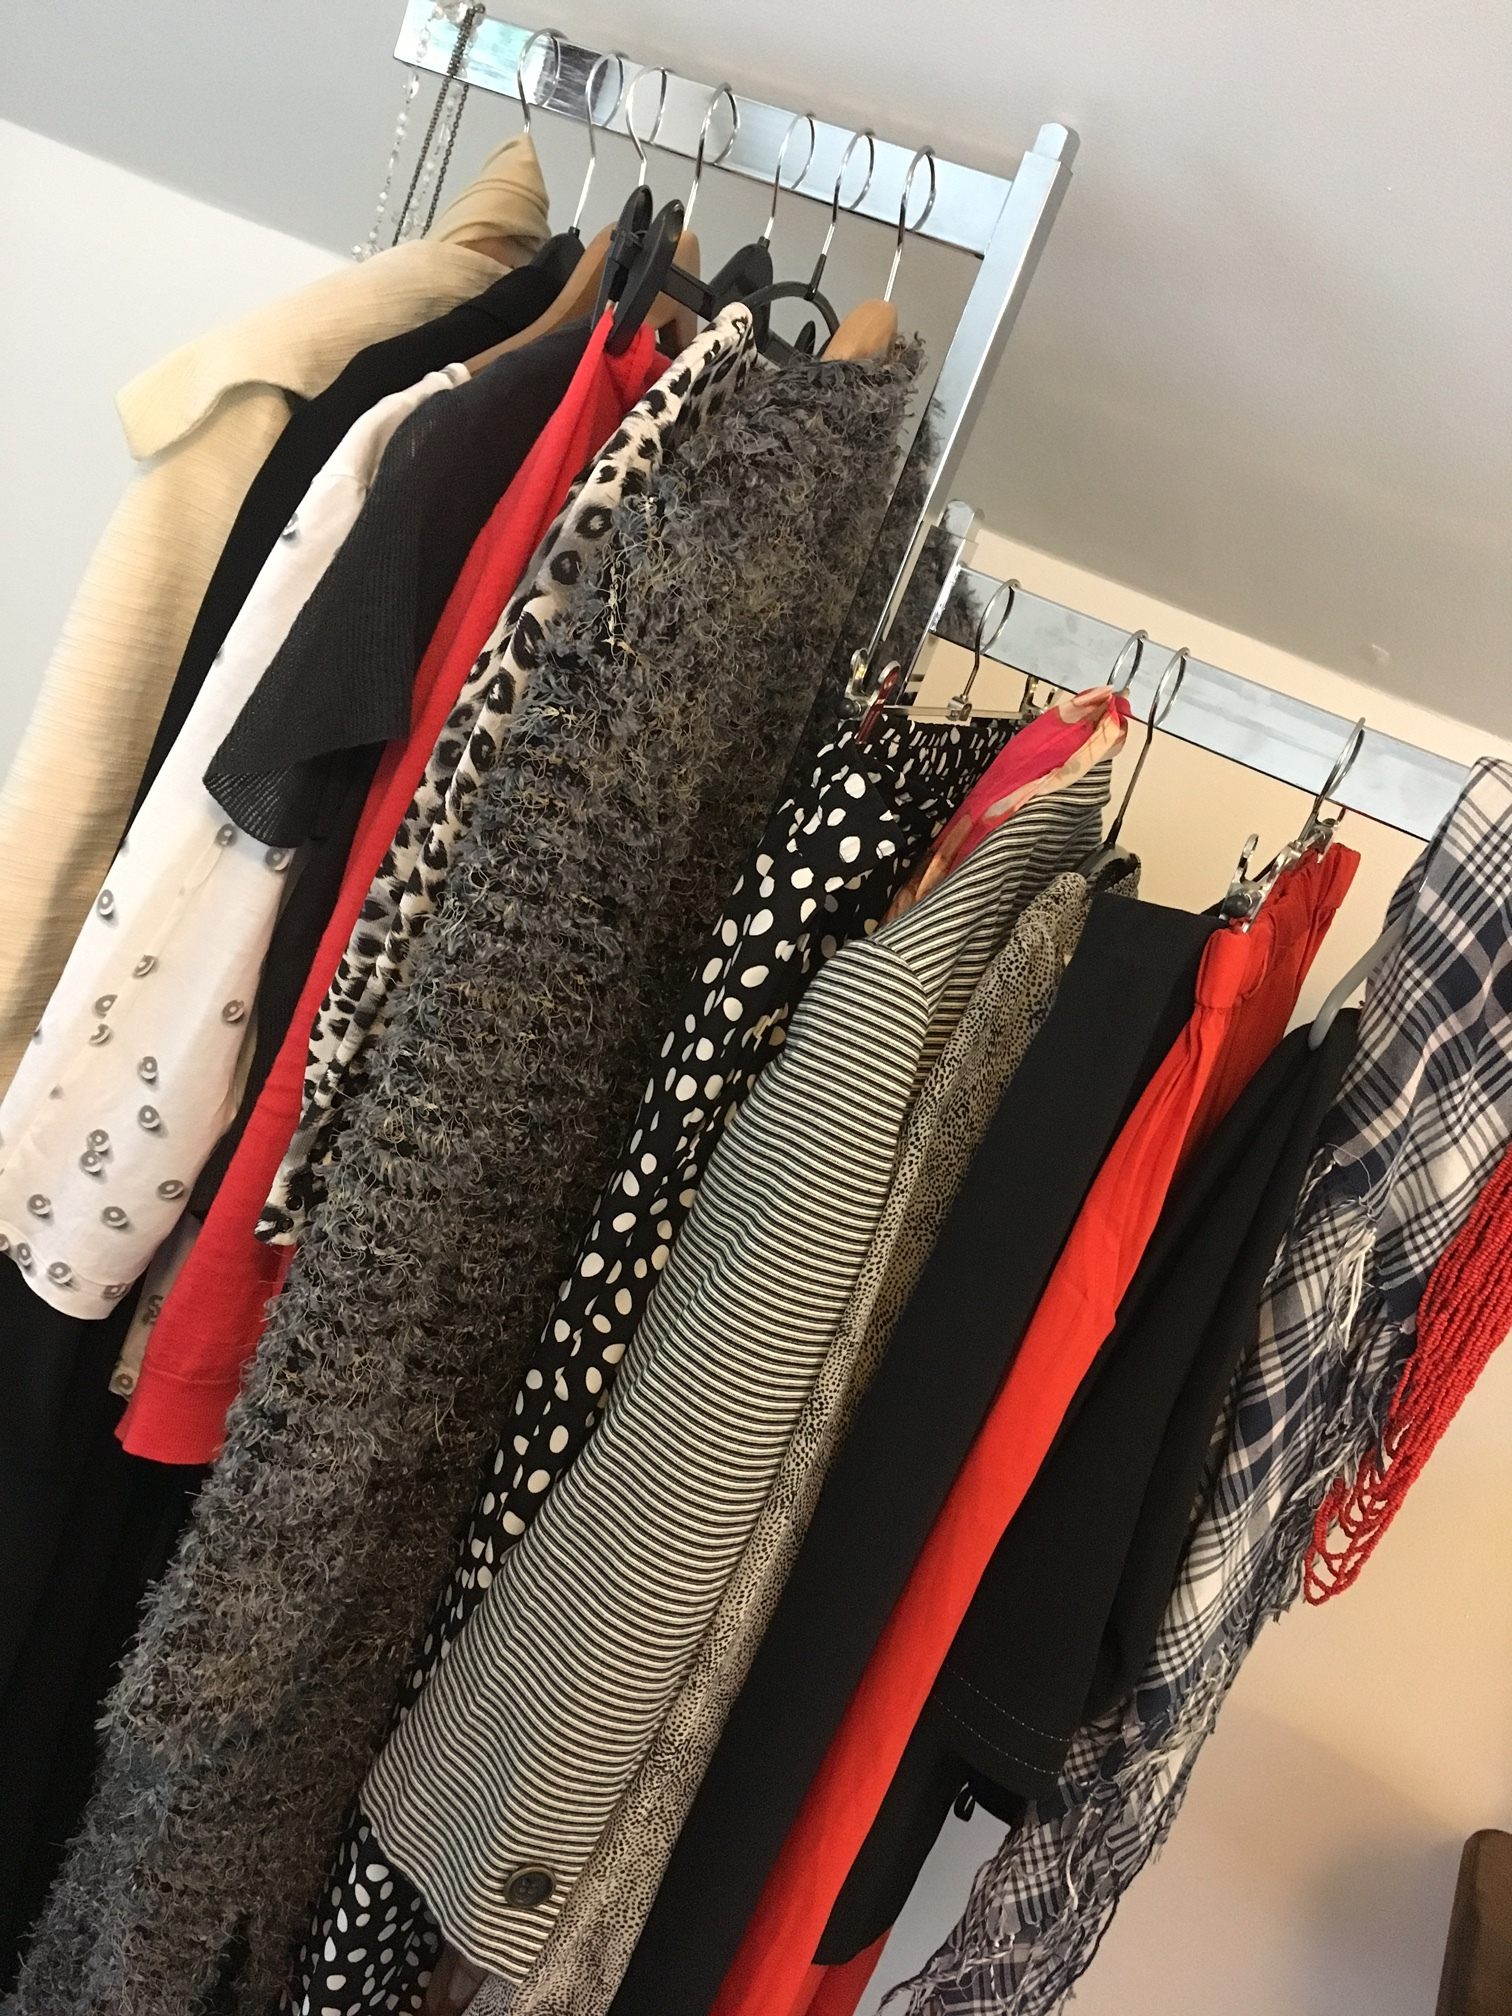 My capsule wardrobe of 18 pieces of clothes and a handful of accessories.